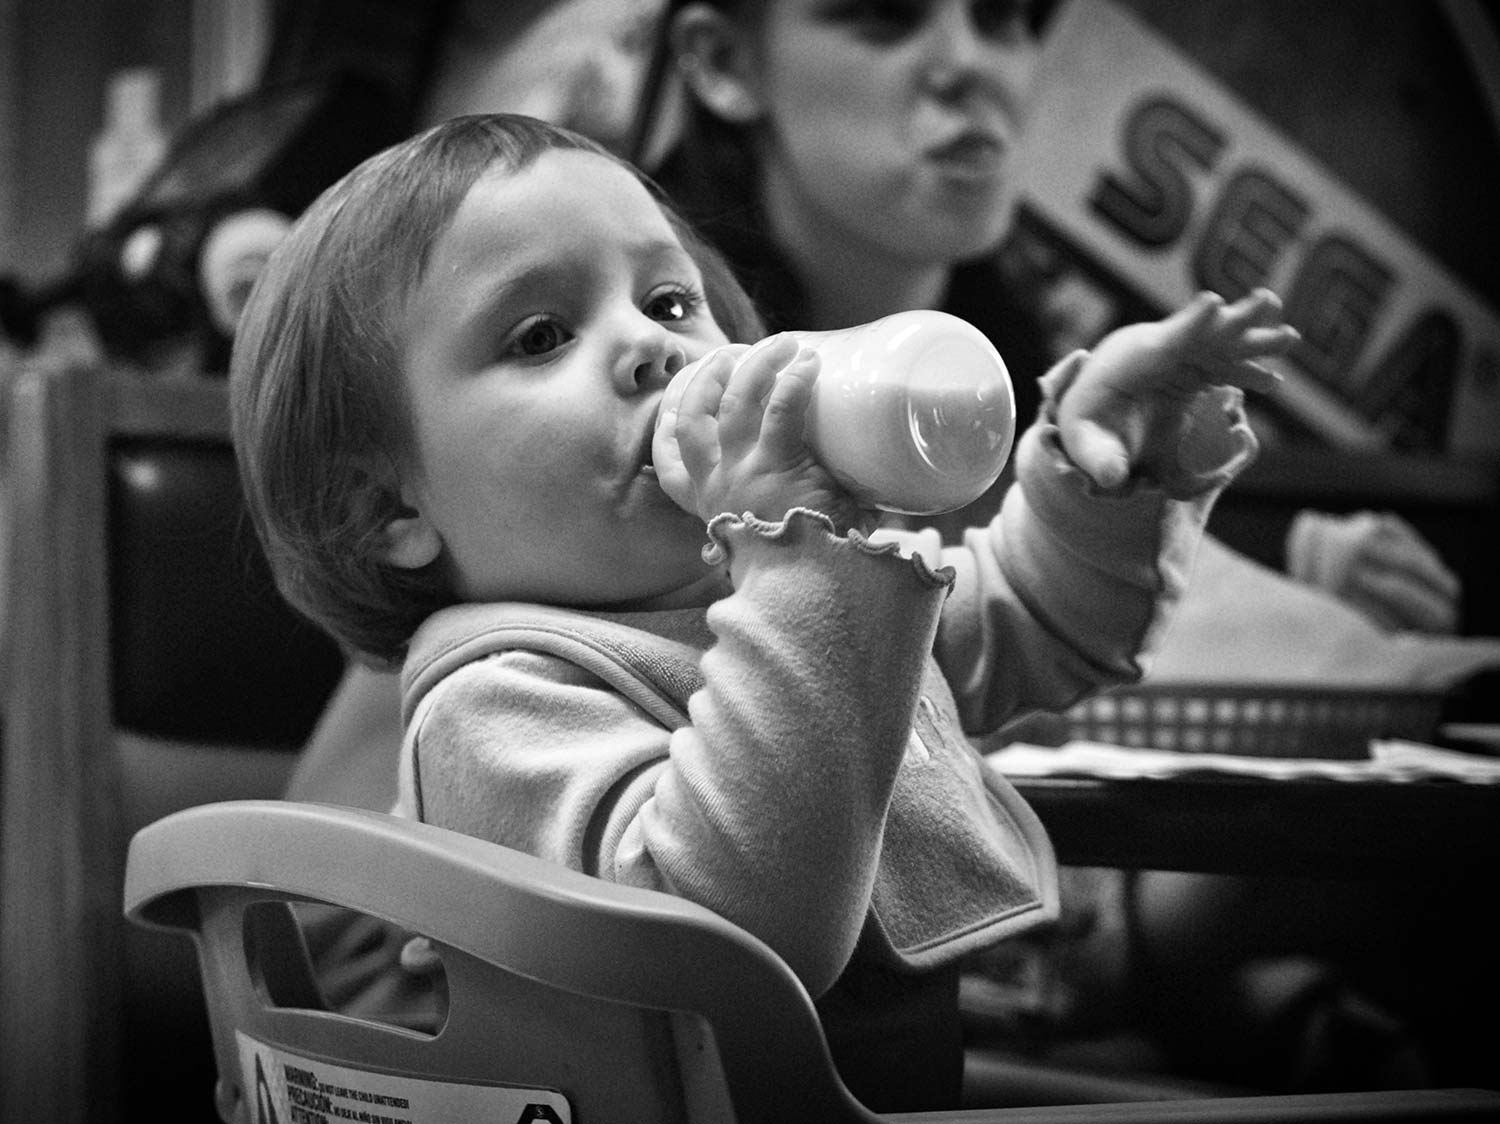 1-year-old Ryleigh Weltch drinks from her cup while admiring customers in Charley's Pizza. Photo By Demetric Banahene. - 2008